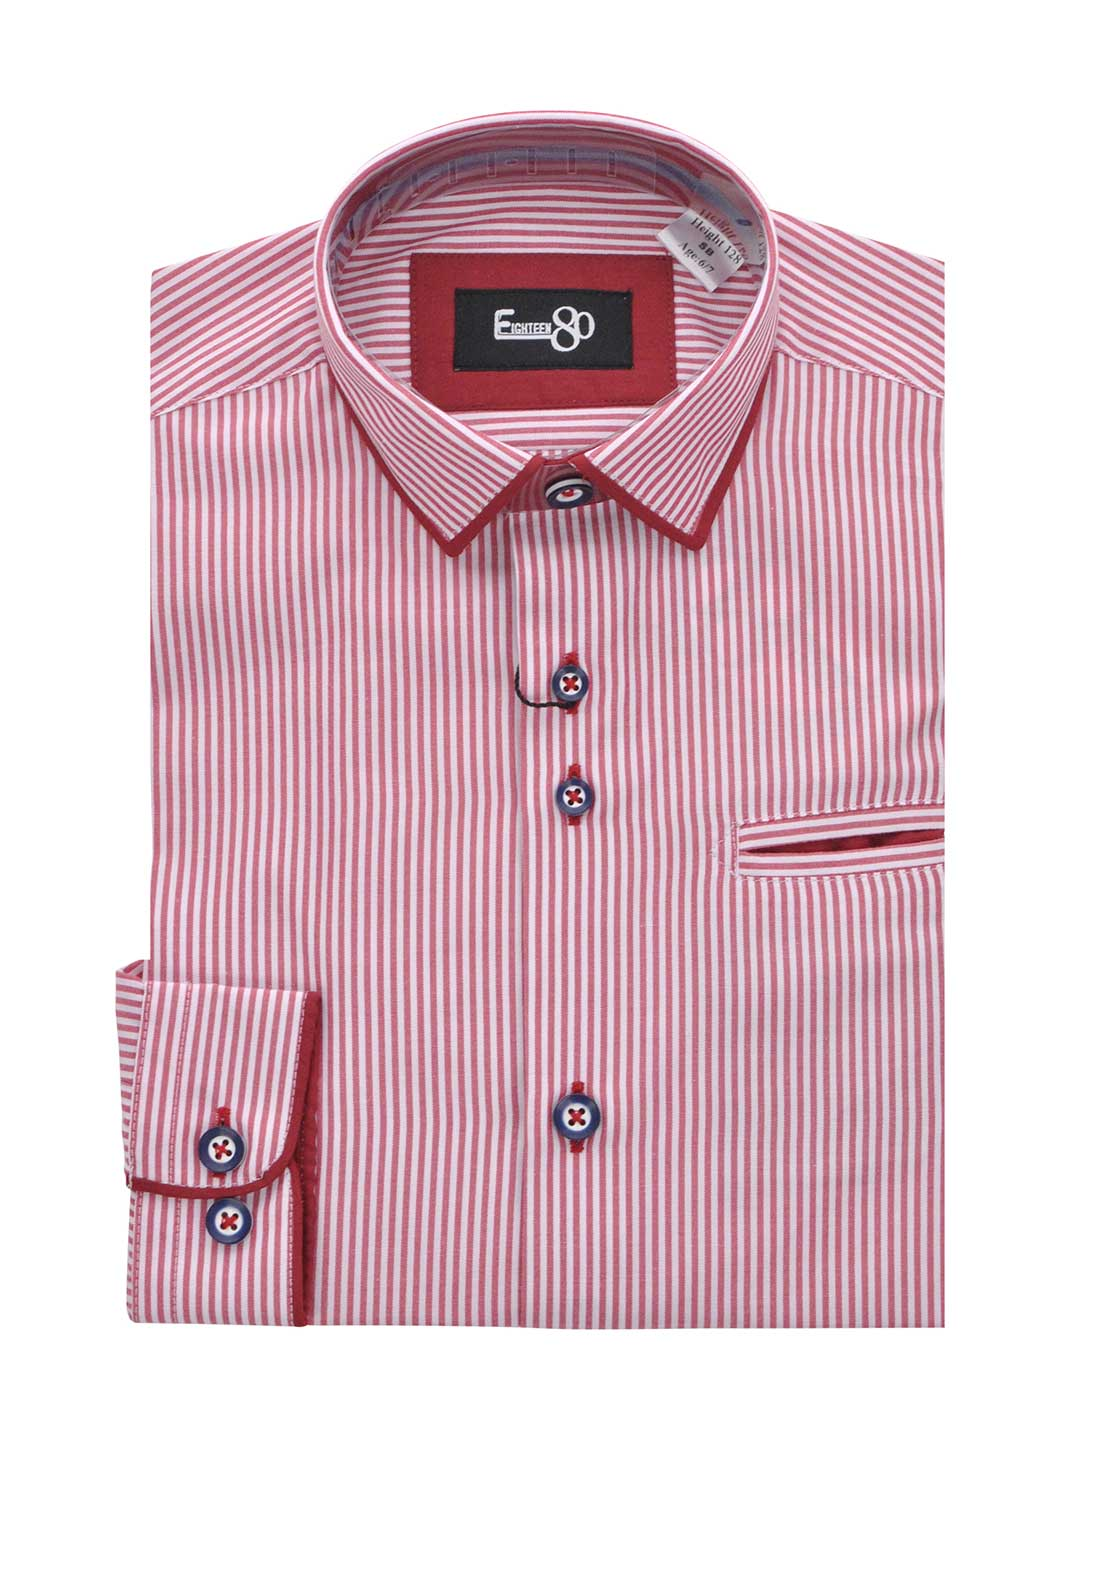 1880 Club Boys Long Sleeve Striped Shirt, Red